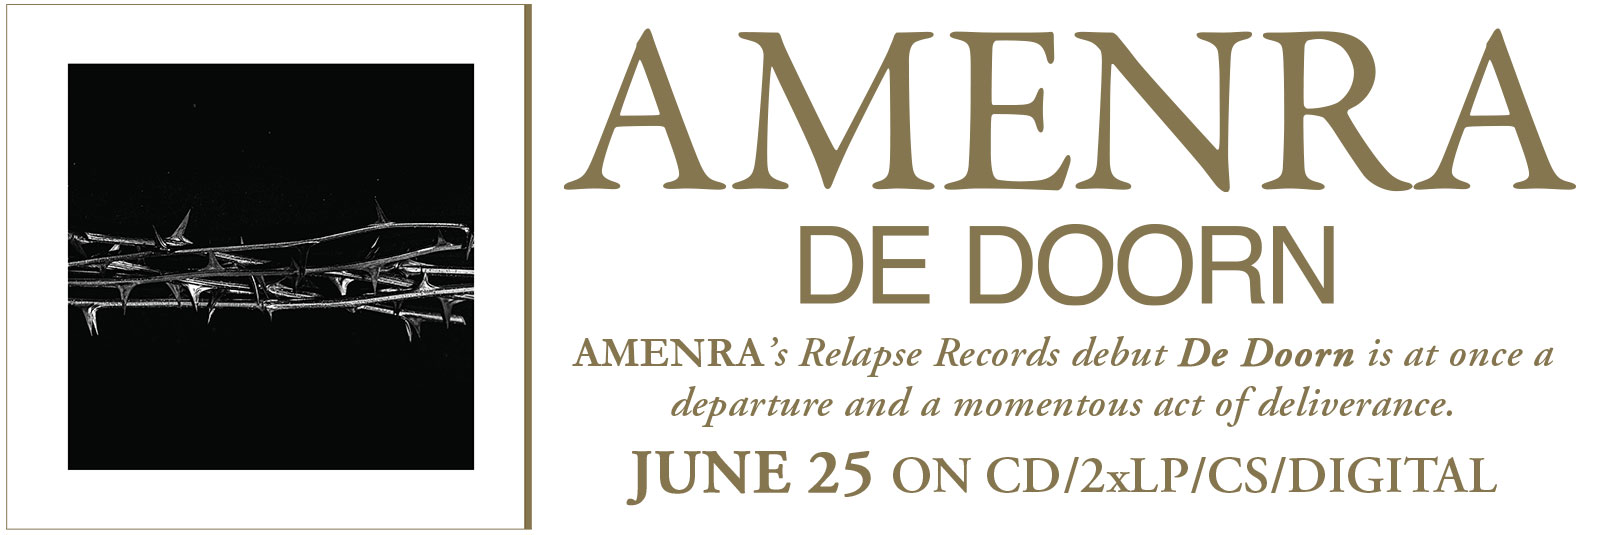 amenra-de-doorn-post-metal-relapse-records